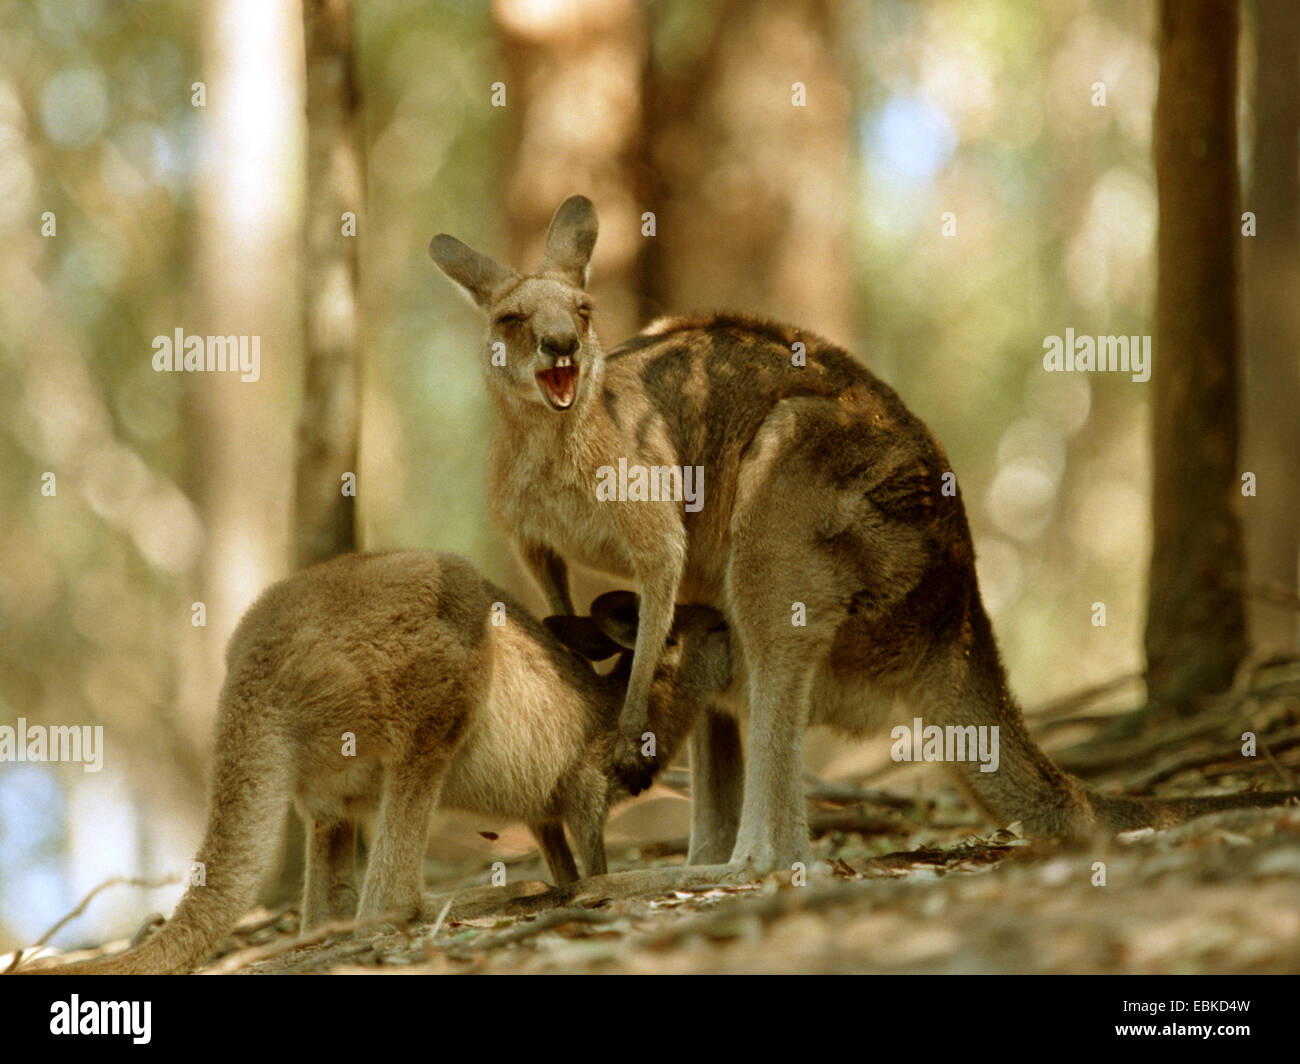 eastern gray kangaroo (Macropus giganteus), older pup suckling Stock Photo